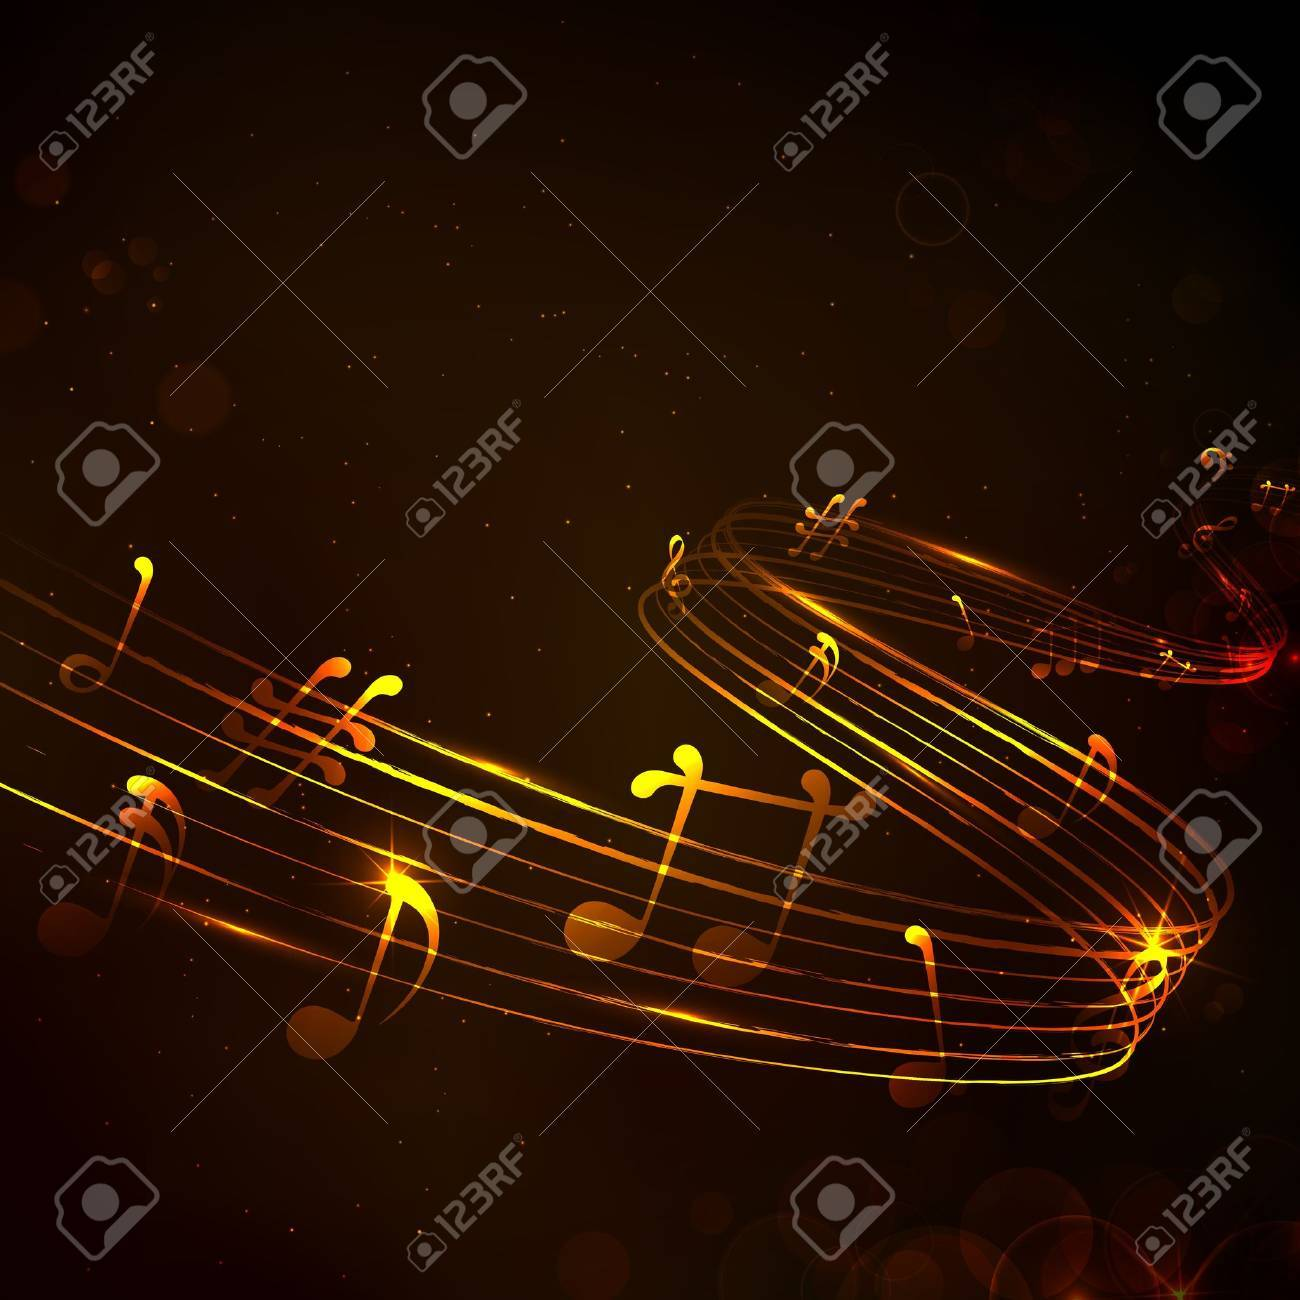 illustration of abstract music note for musical background Stock Vector - 19244887